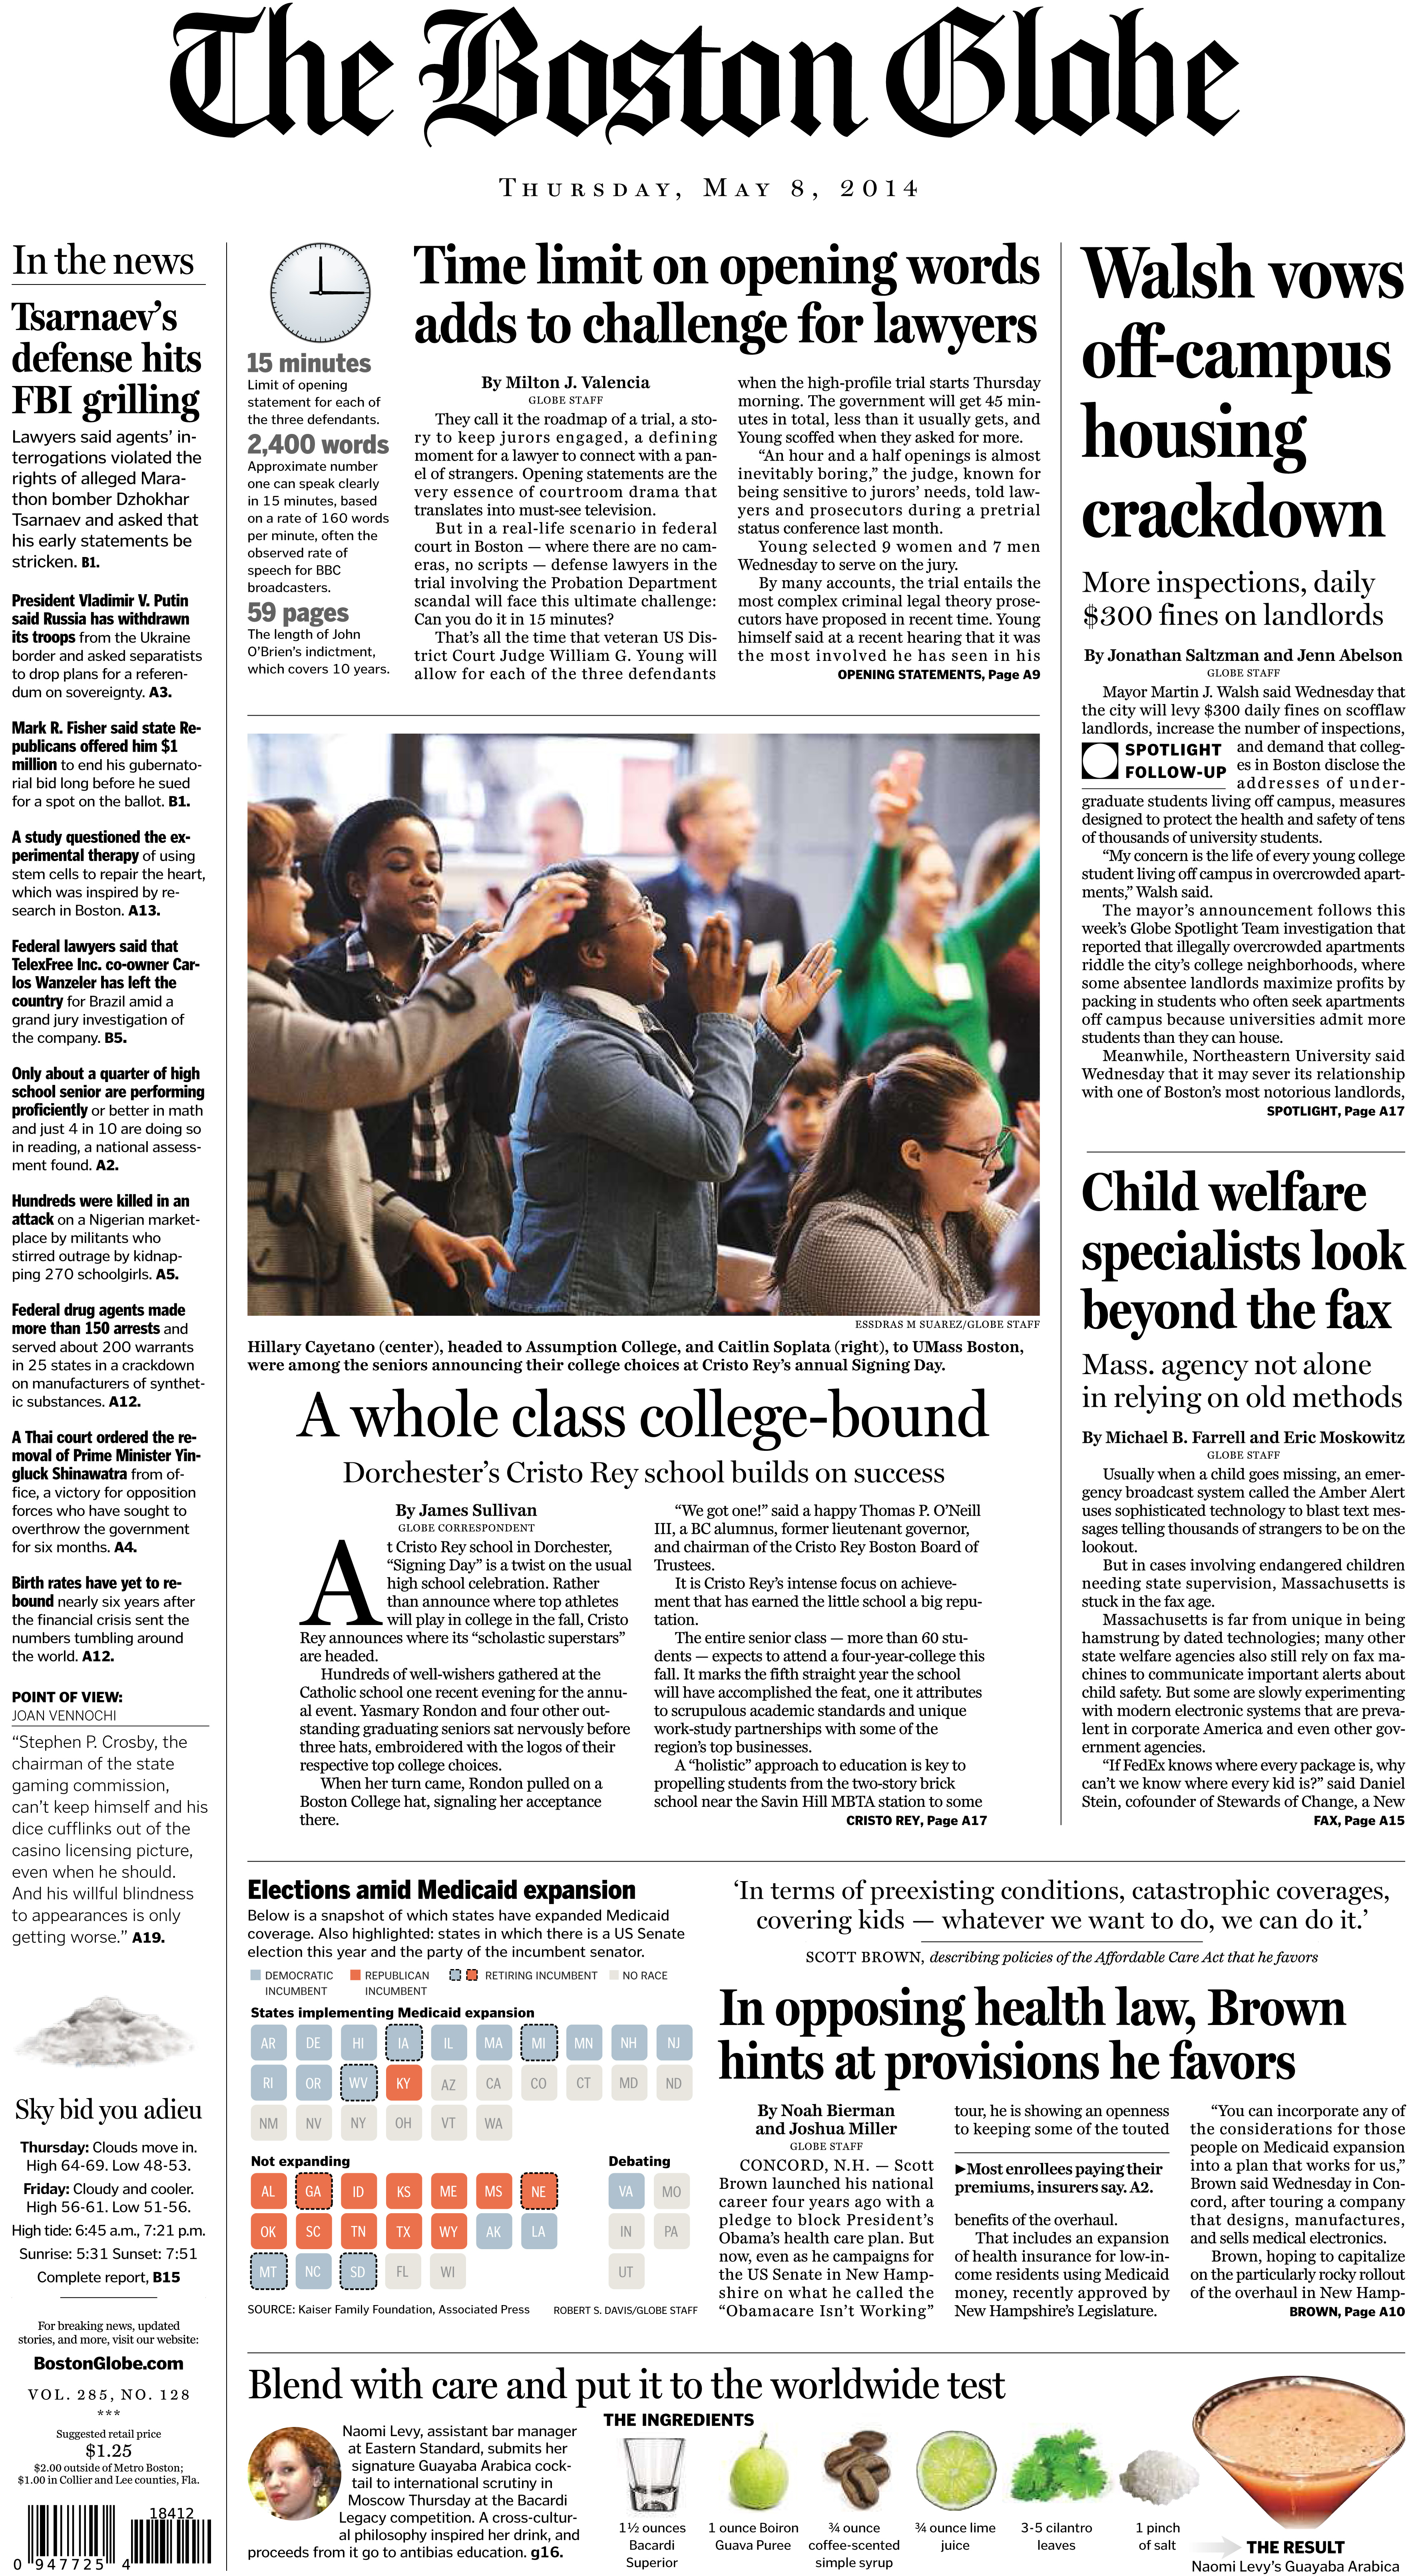 A look at Scott Brown's appearances on page one of the Globe - The